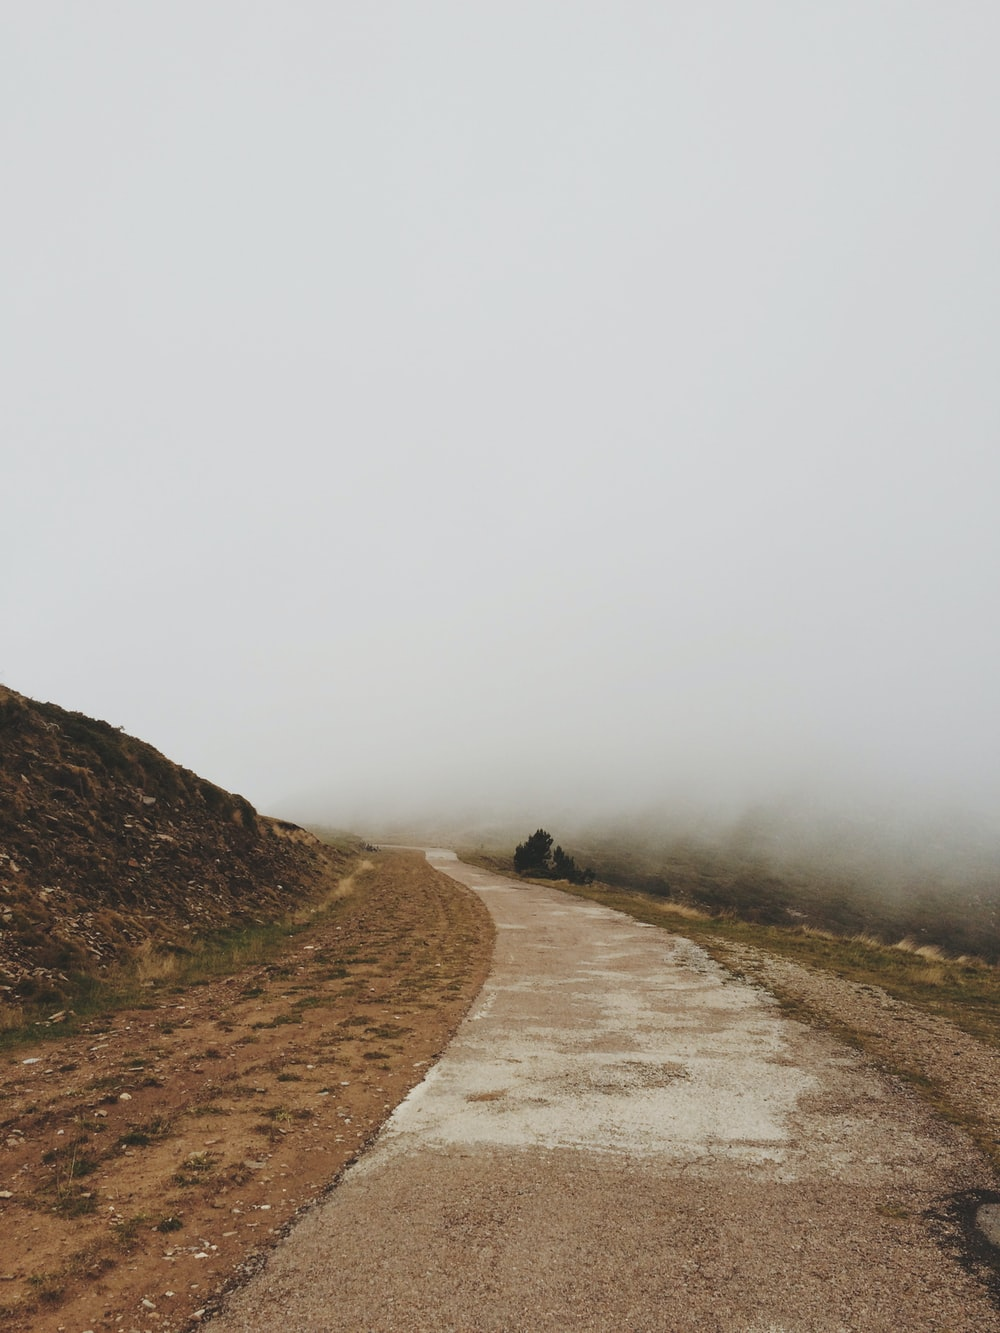 scenery of a road under fog